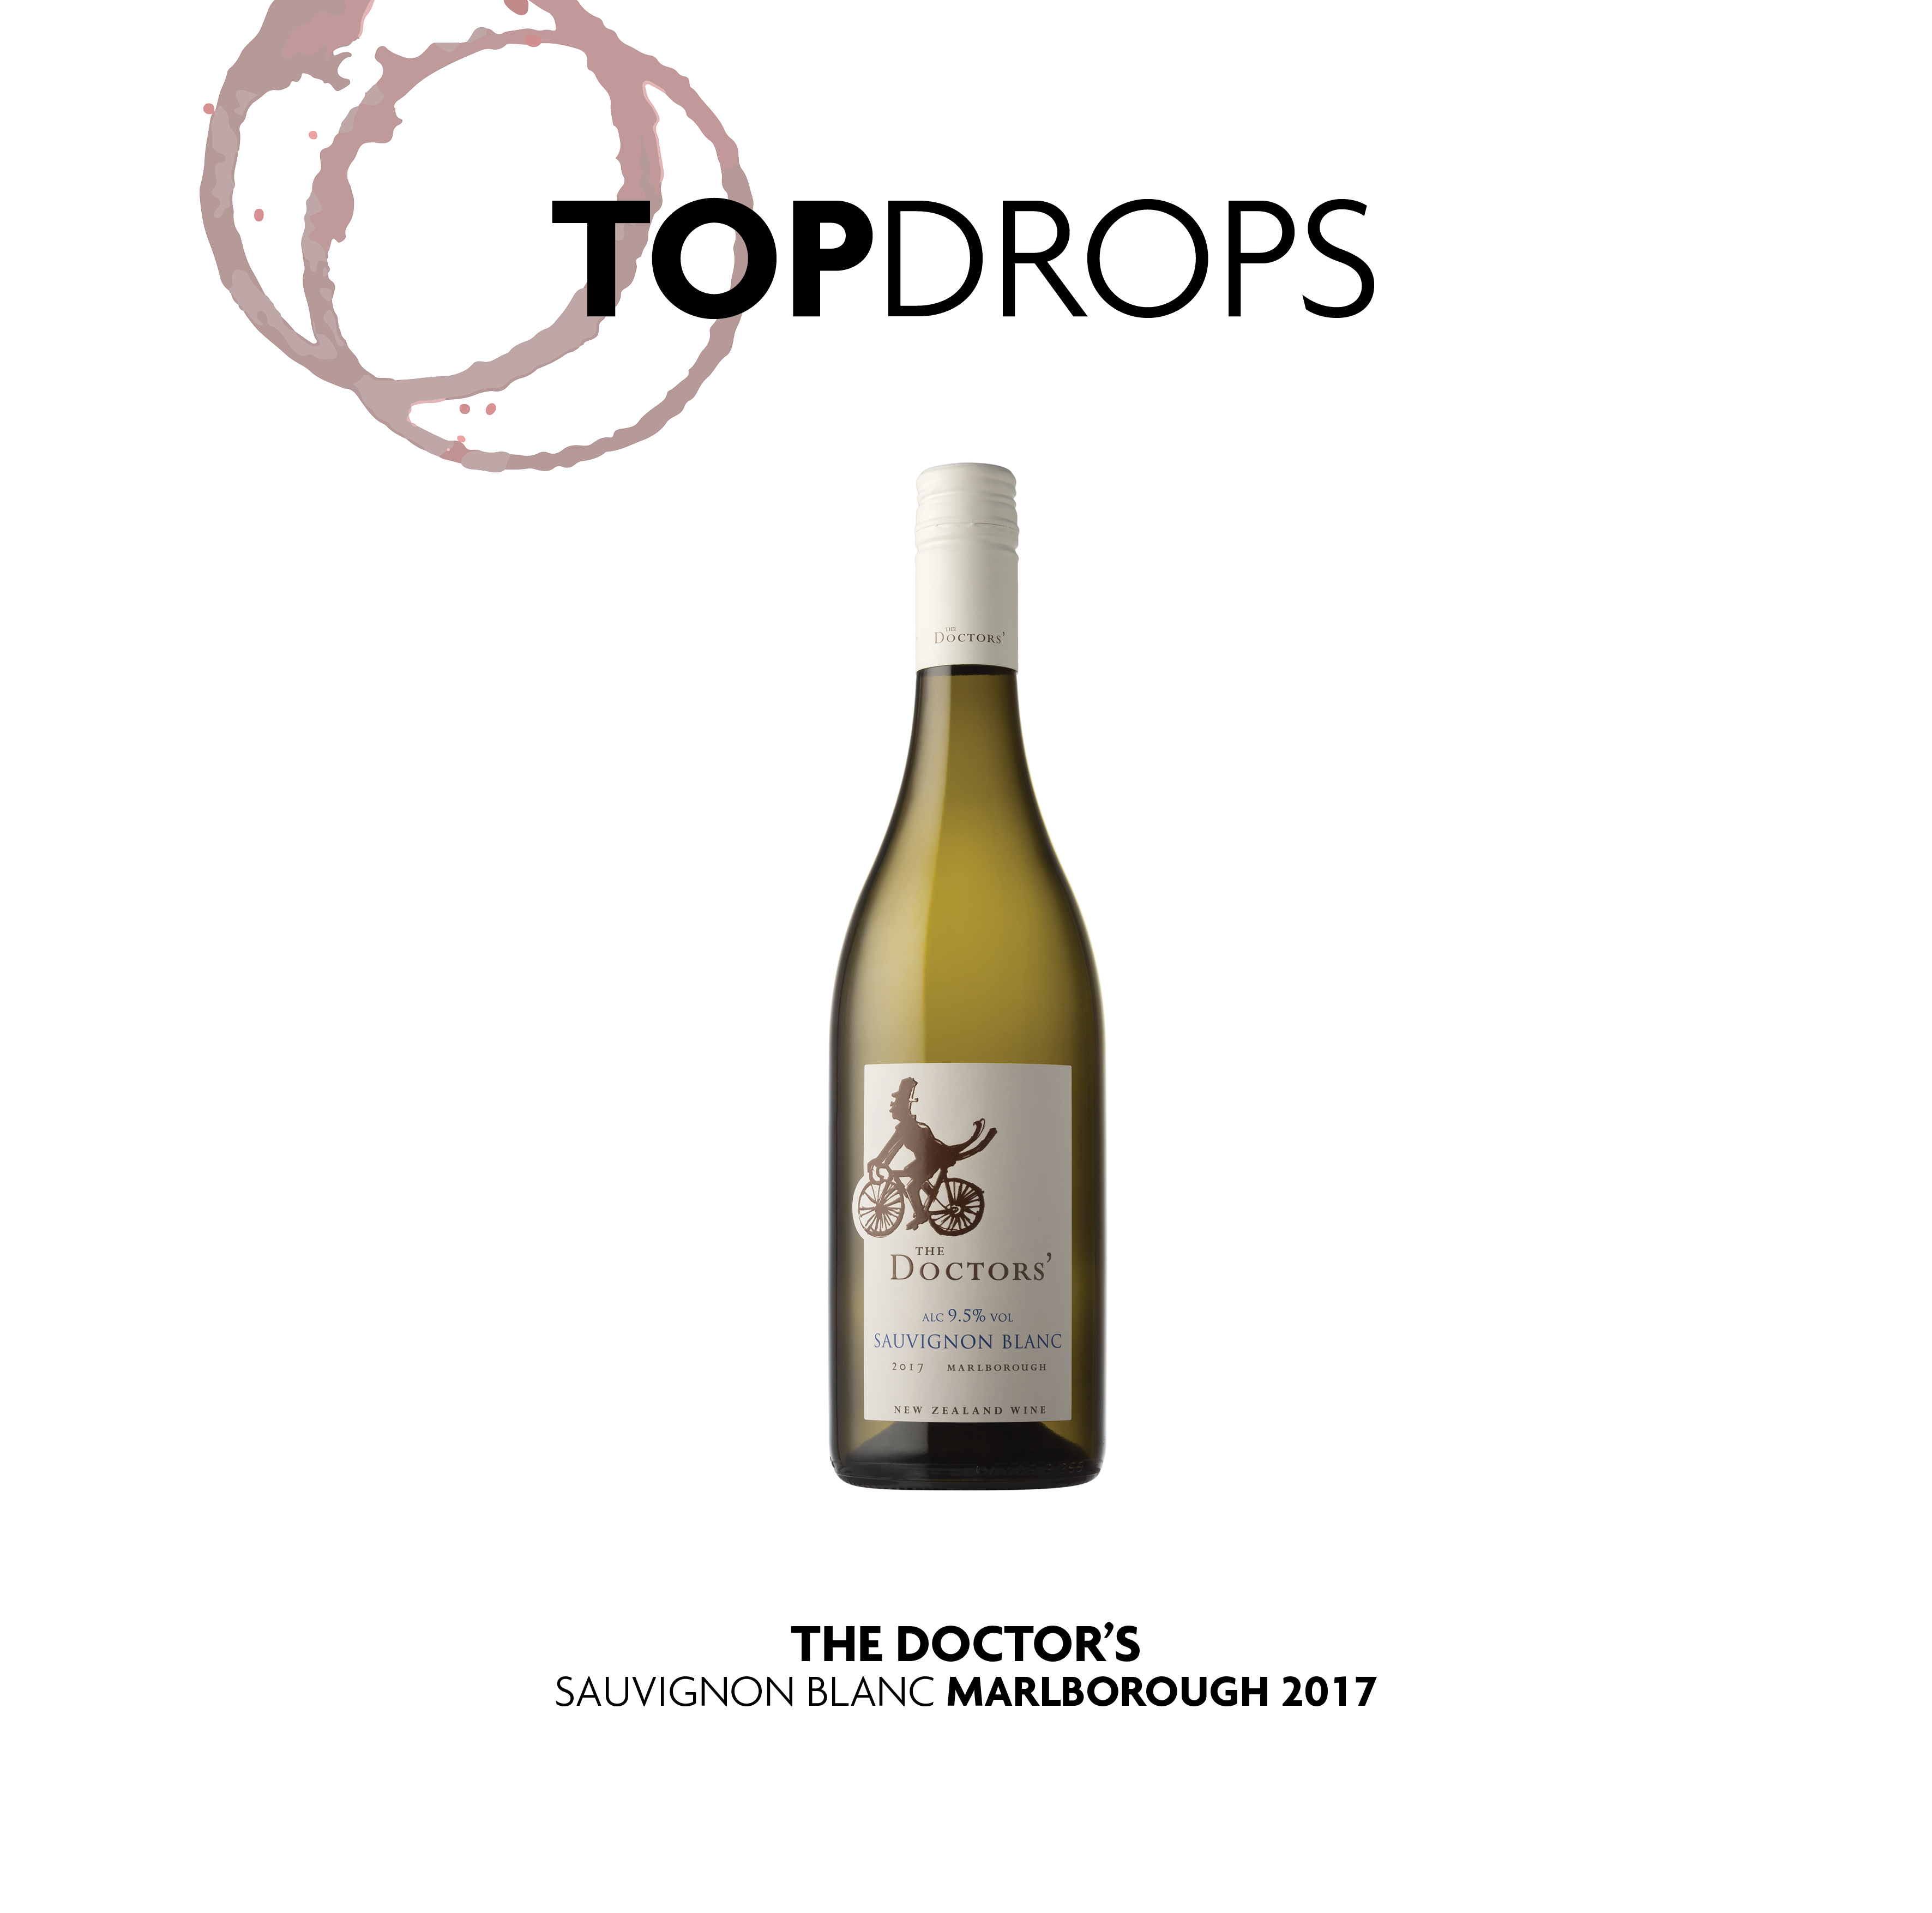 Bottle shot of The Doctors' Marlborough Sauvignon Blanc 2017